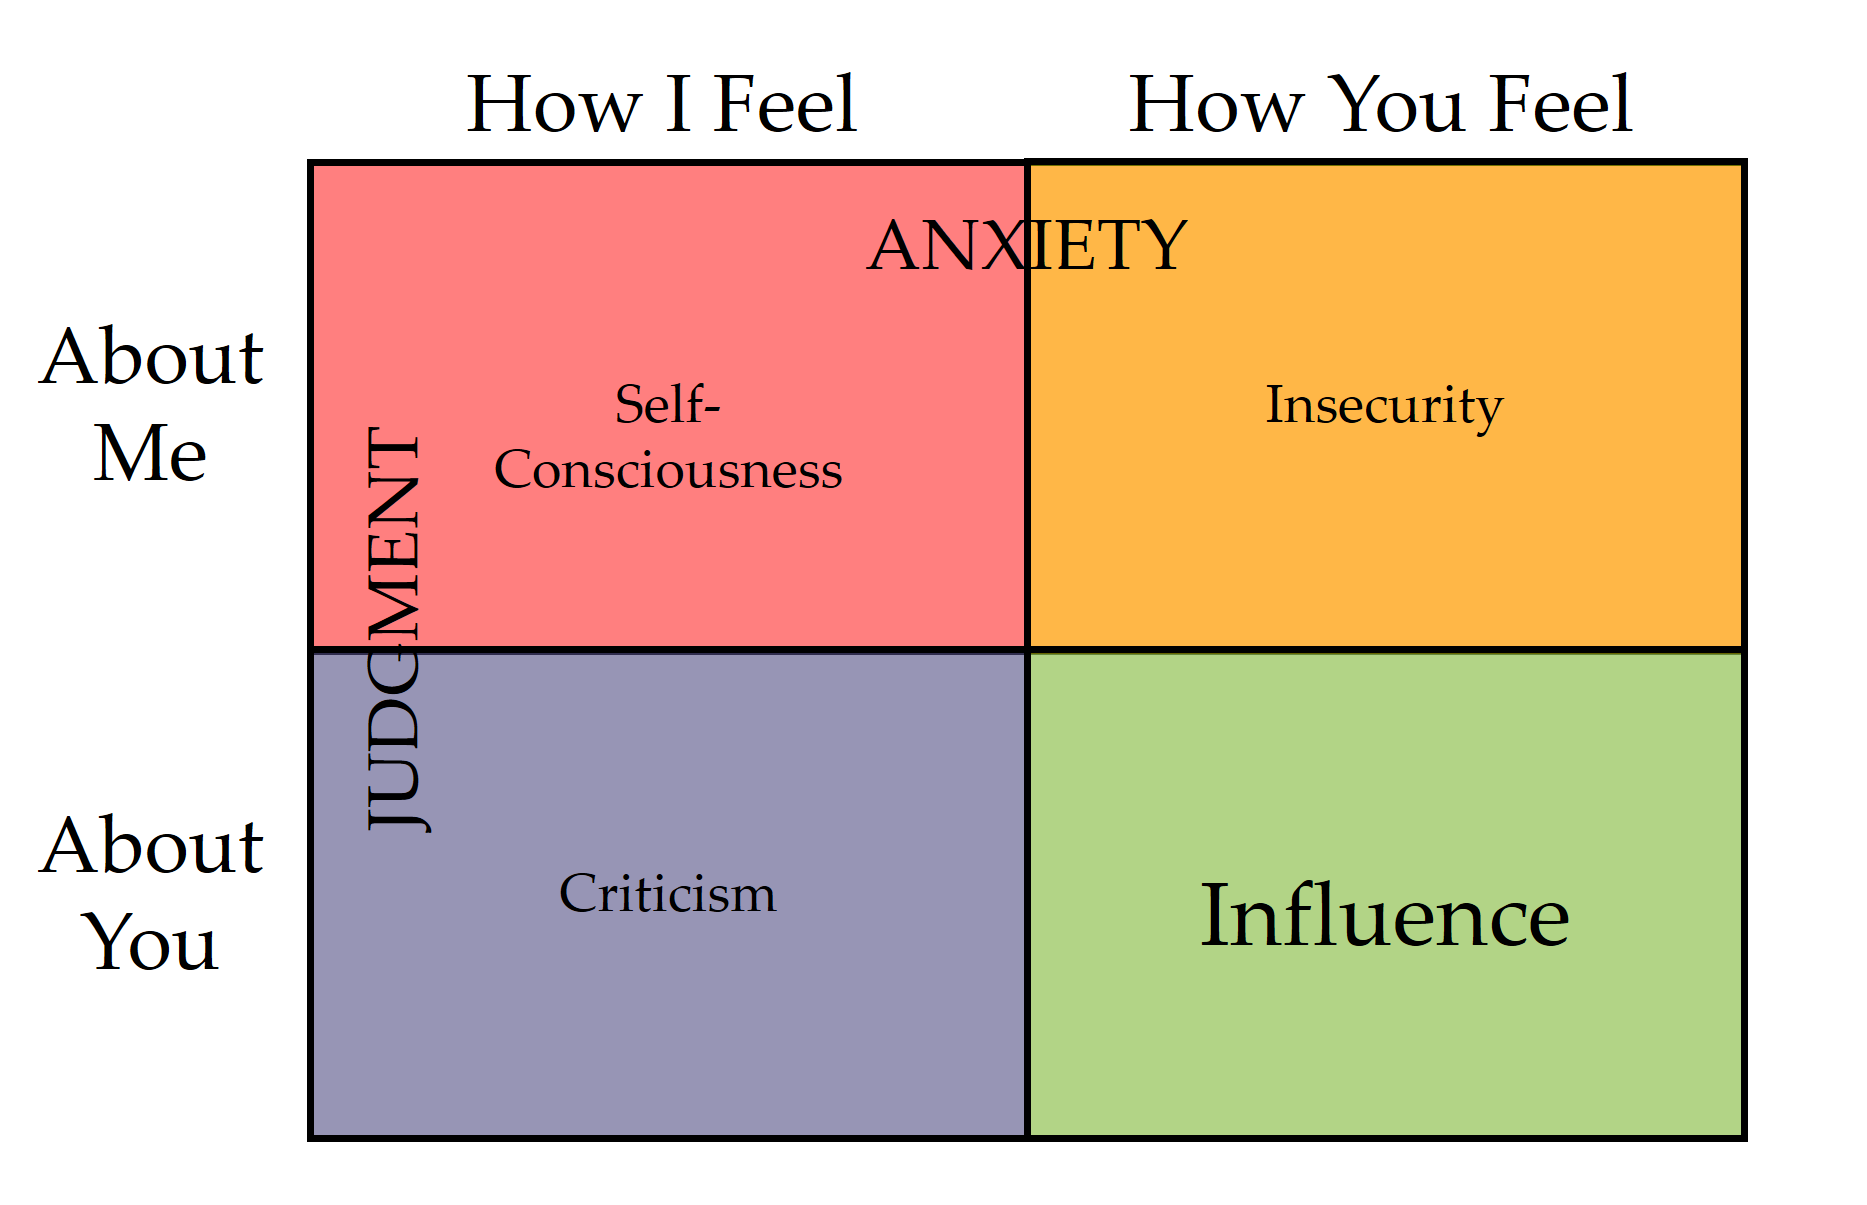 The Influence Quadrant